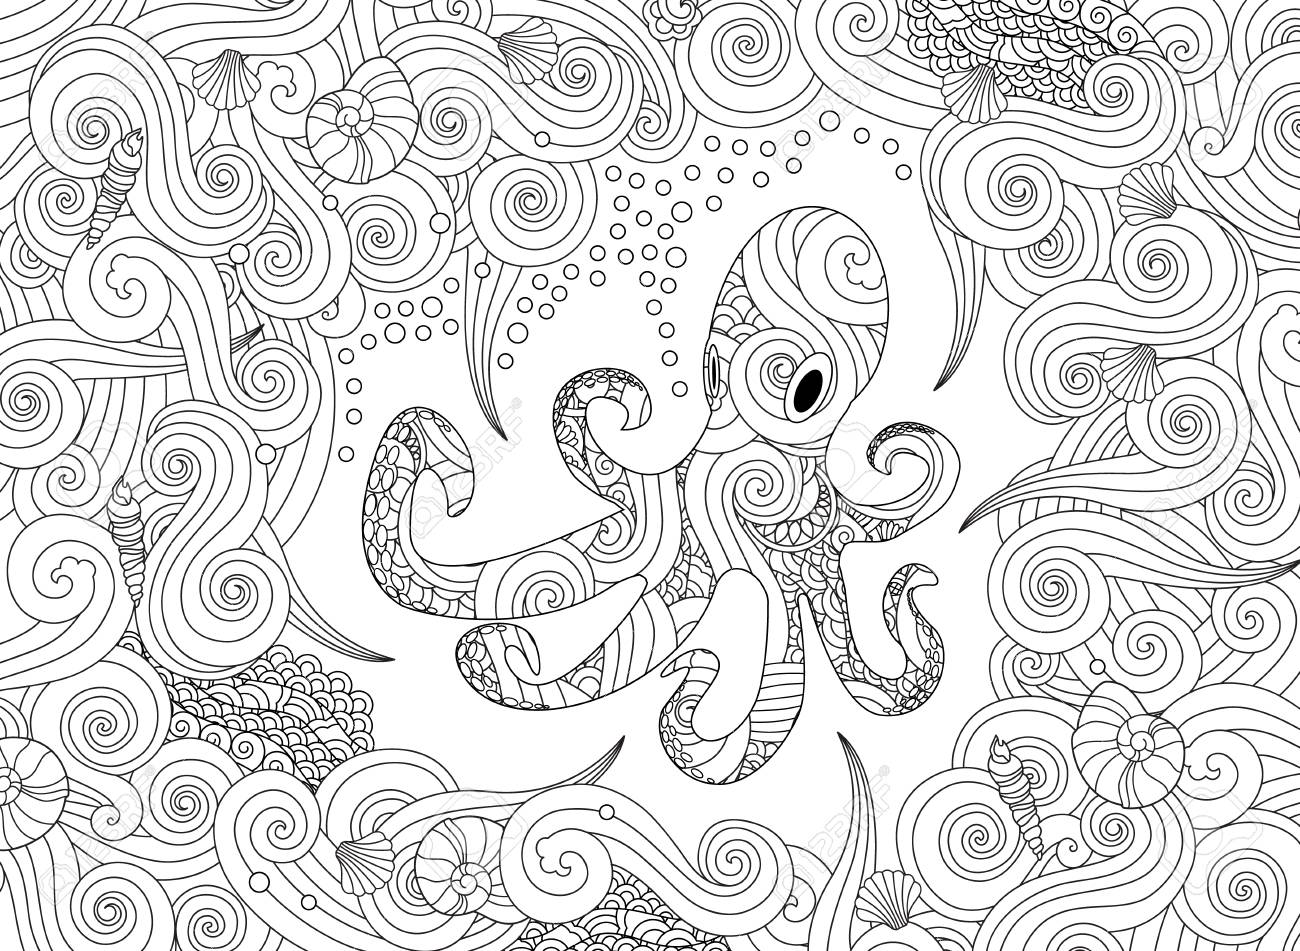 Coloring Page With Ornate Octopus Isolated On White Background